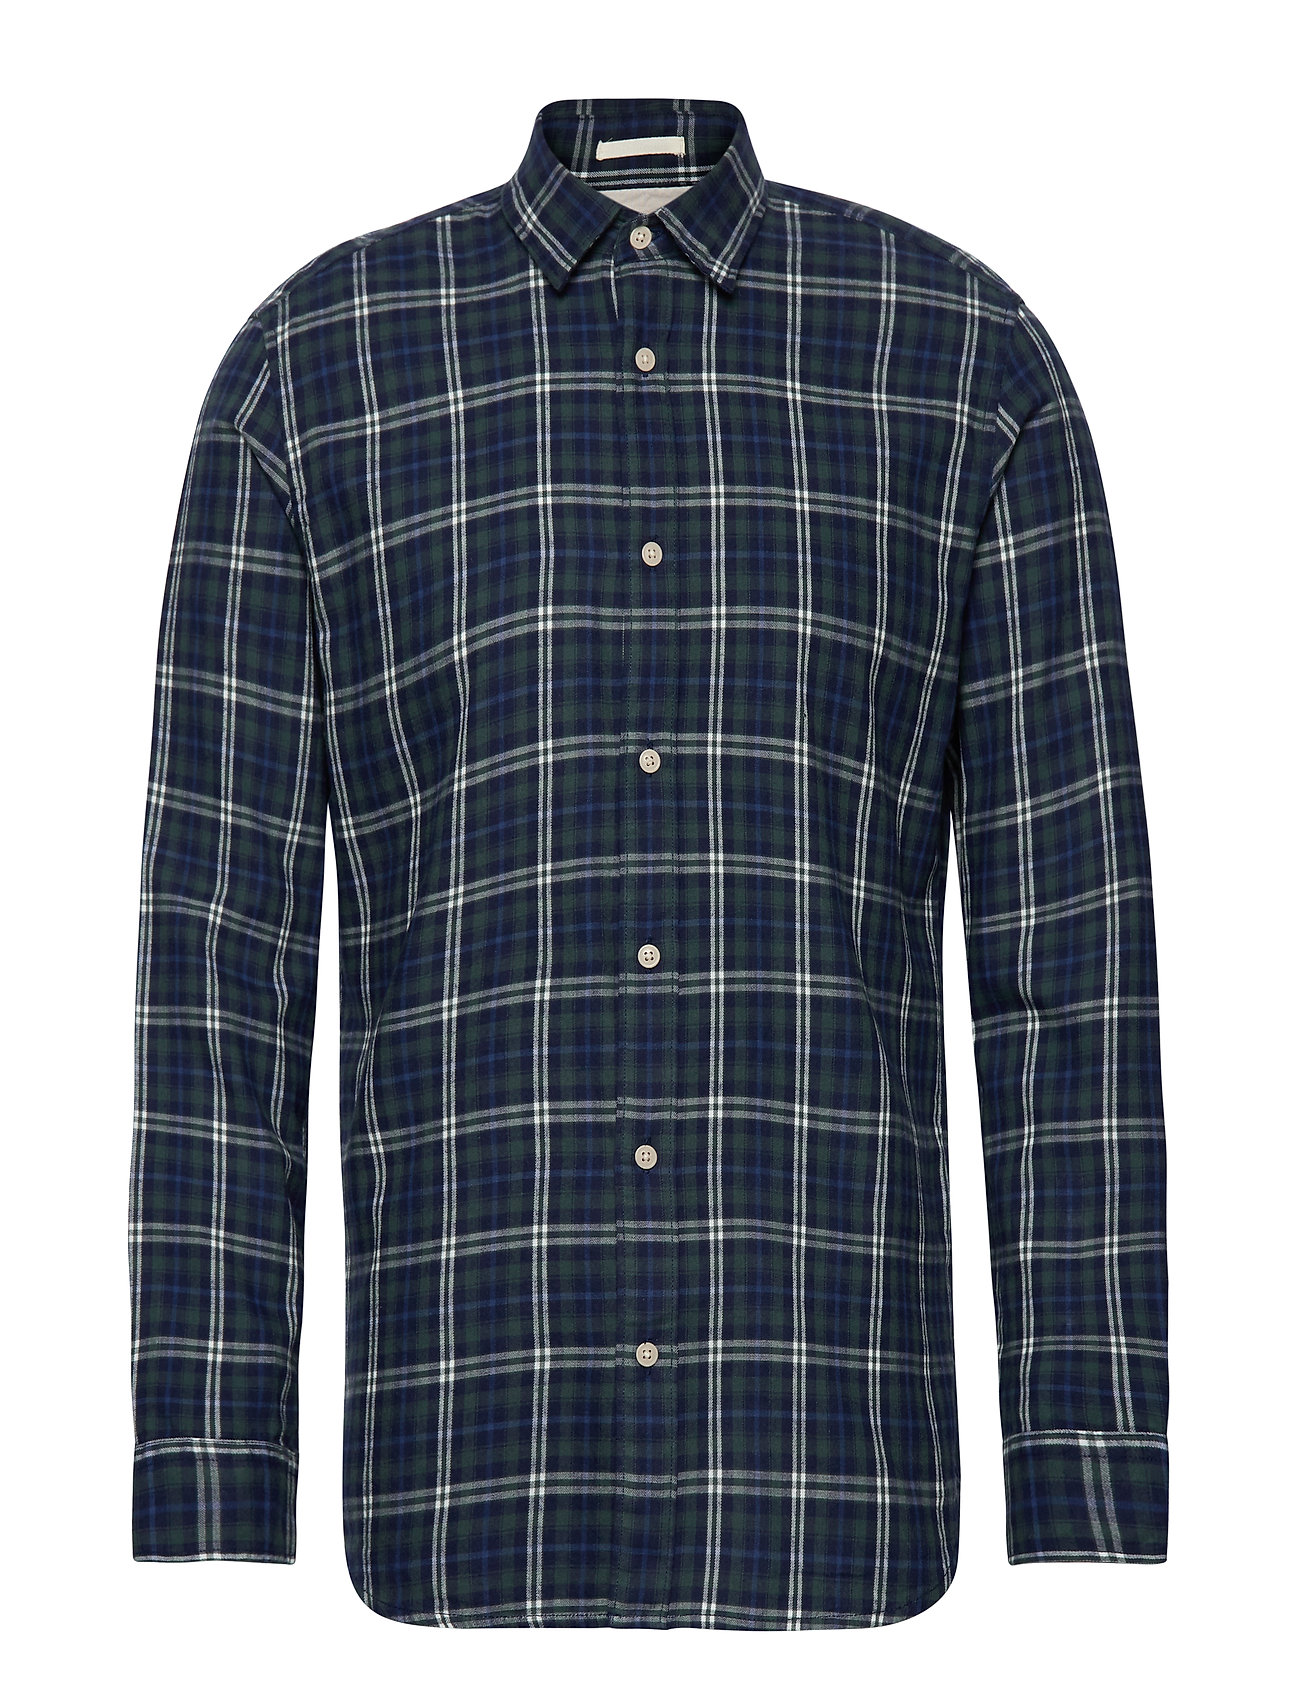 Selected Homme SLHSLIMWOOD SHIRT LS CHECK W - LIMOGES